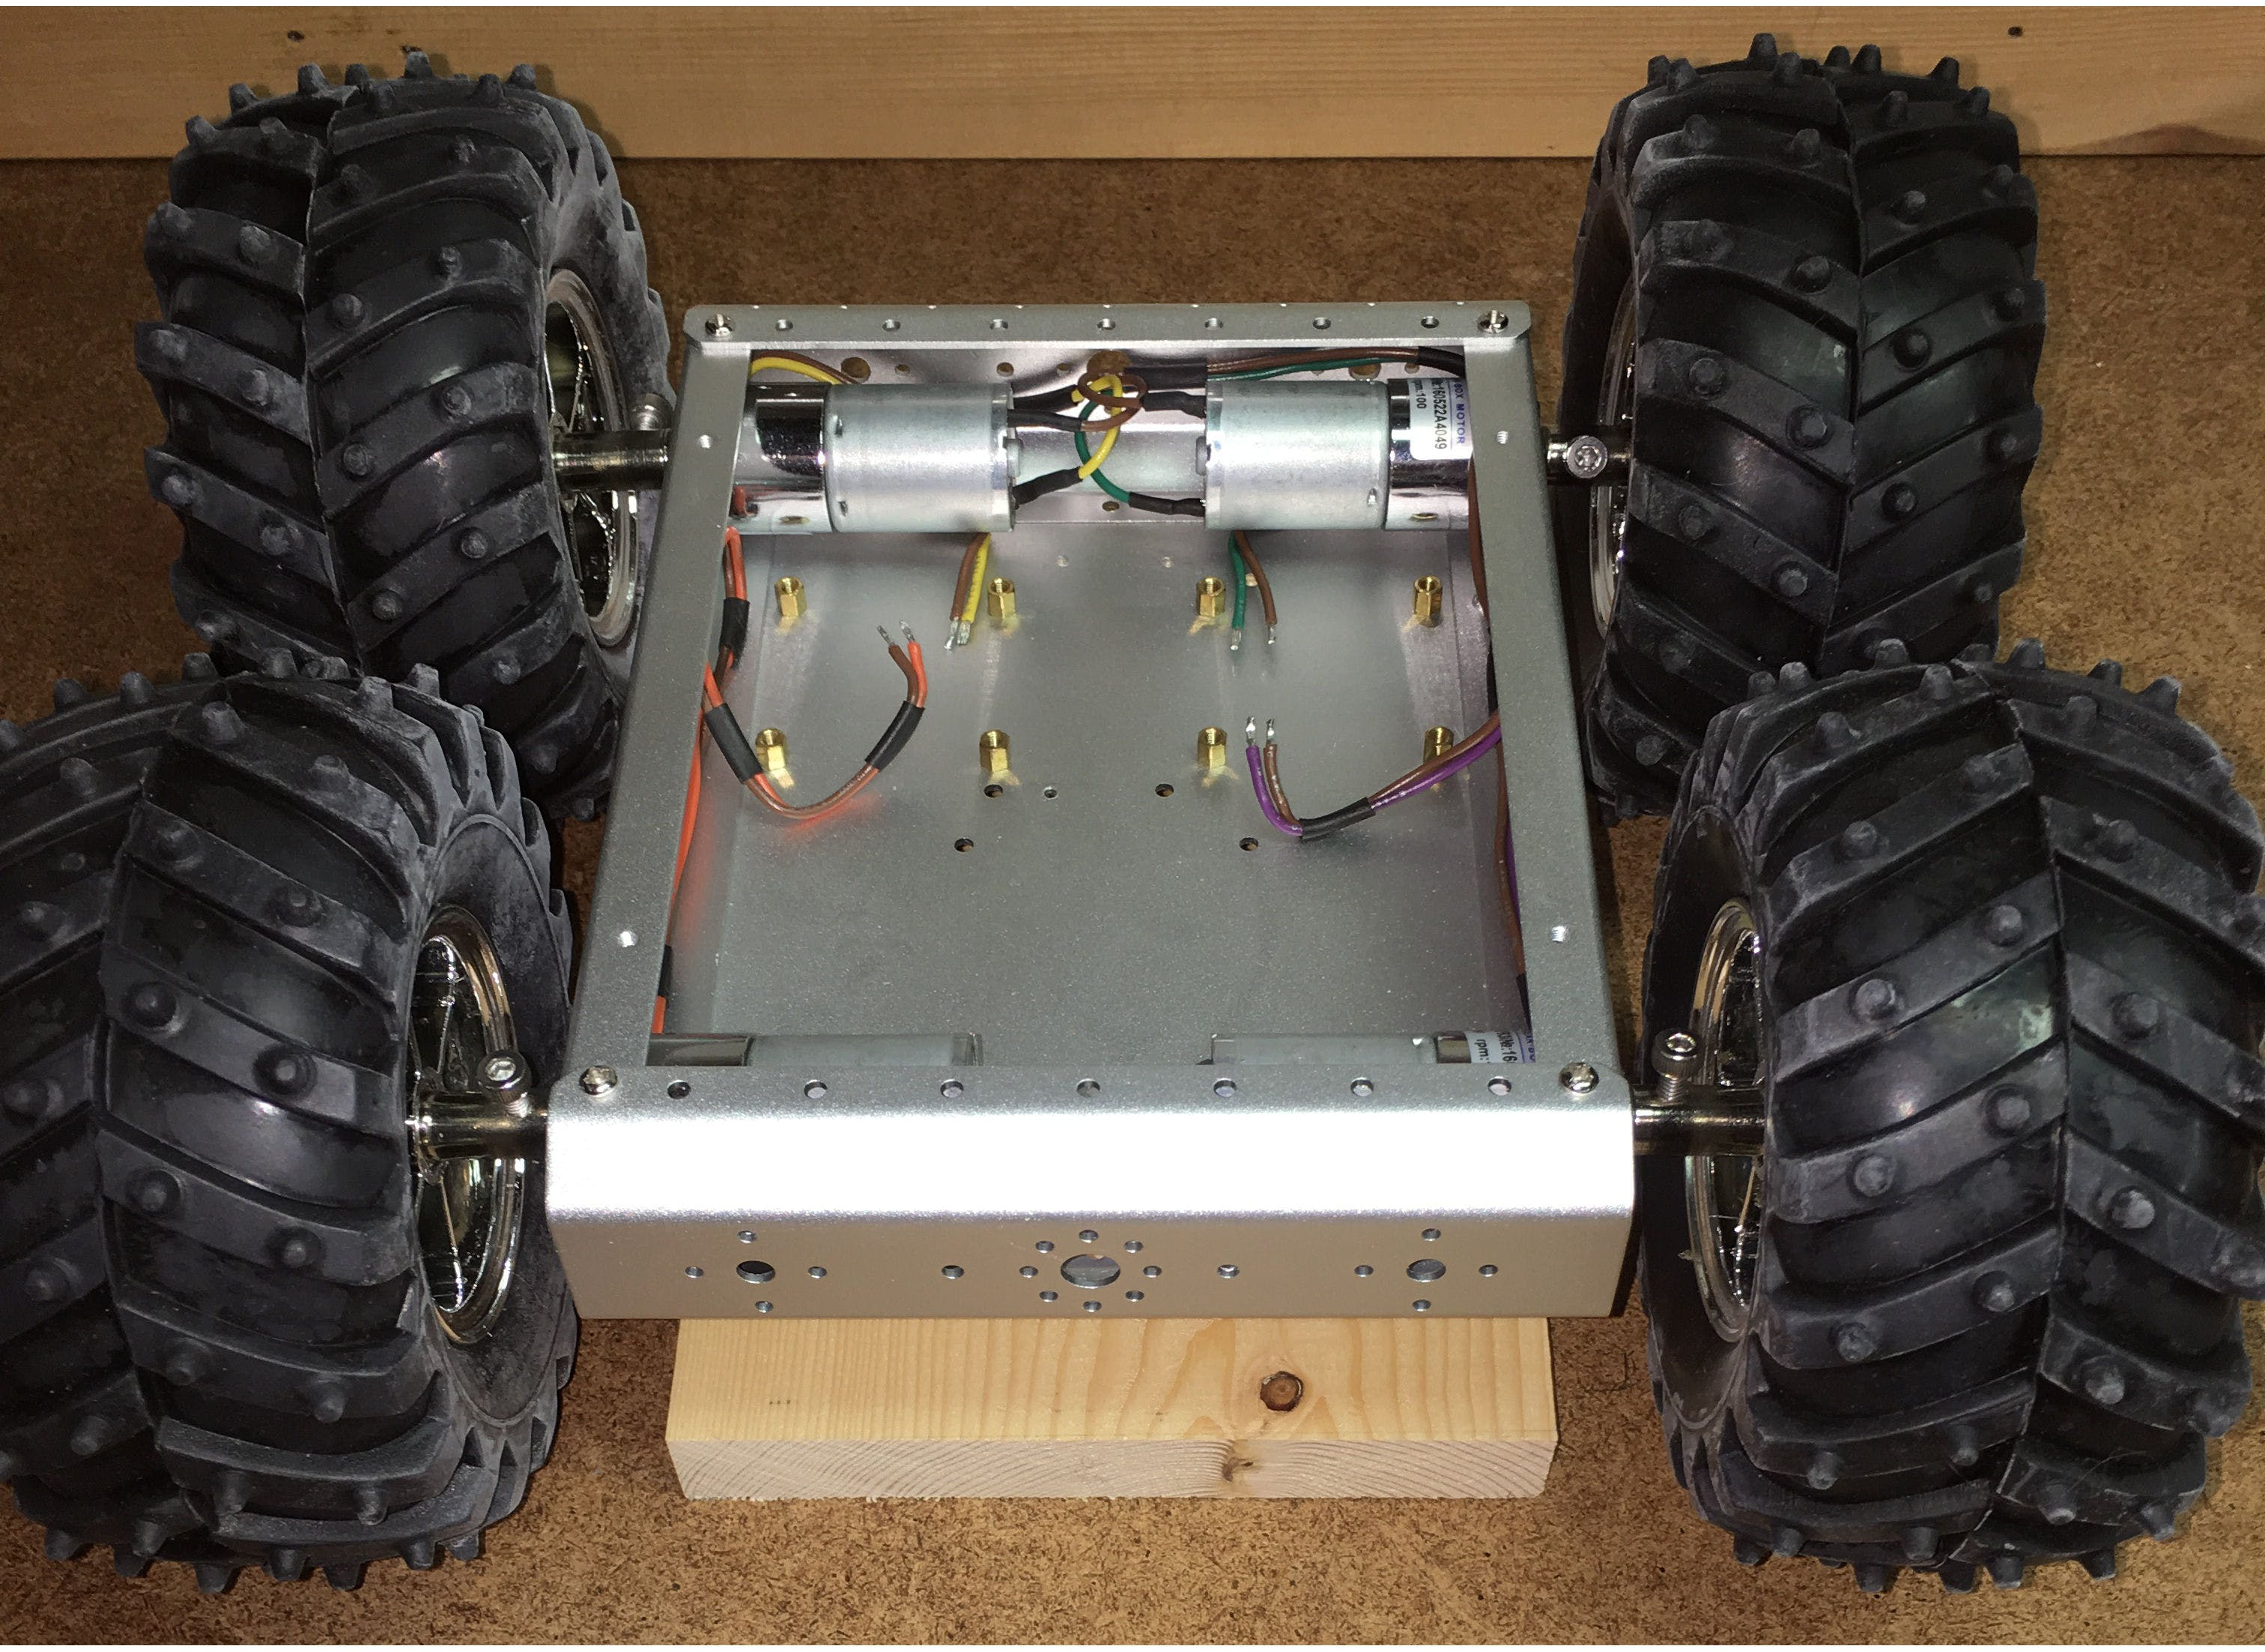 Chassis with Motors installed